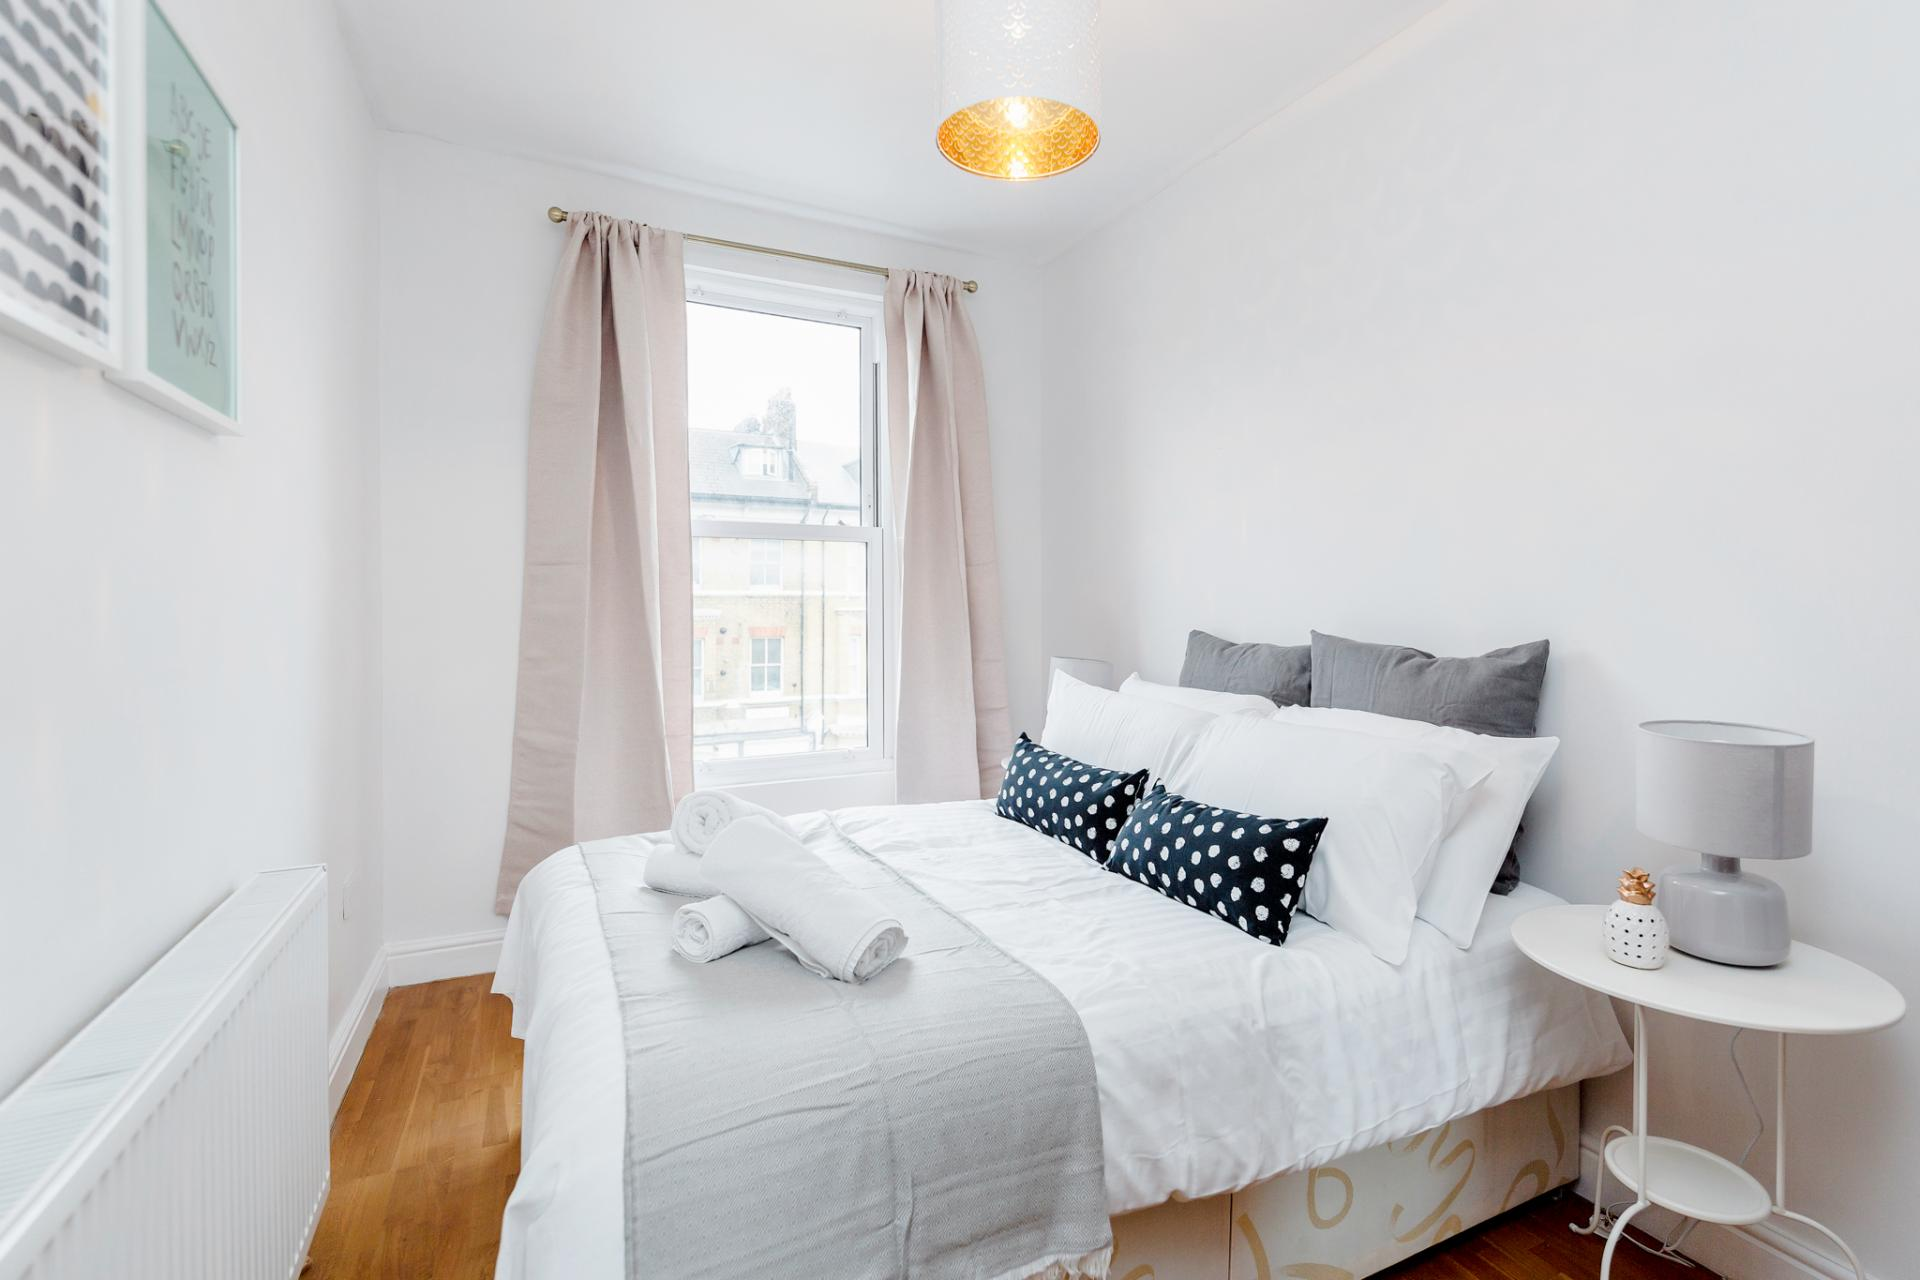 Bedroom at Lavender Hill Apartments, Clapham Junction, London - Citybase Apartments